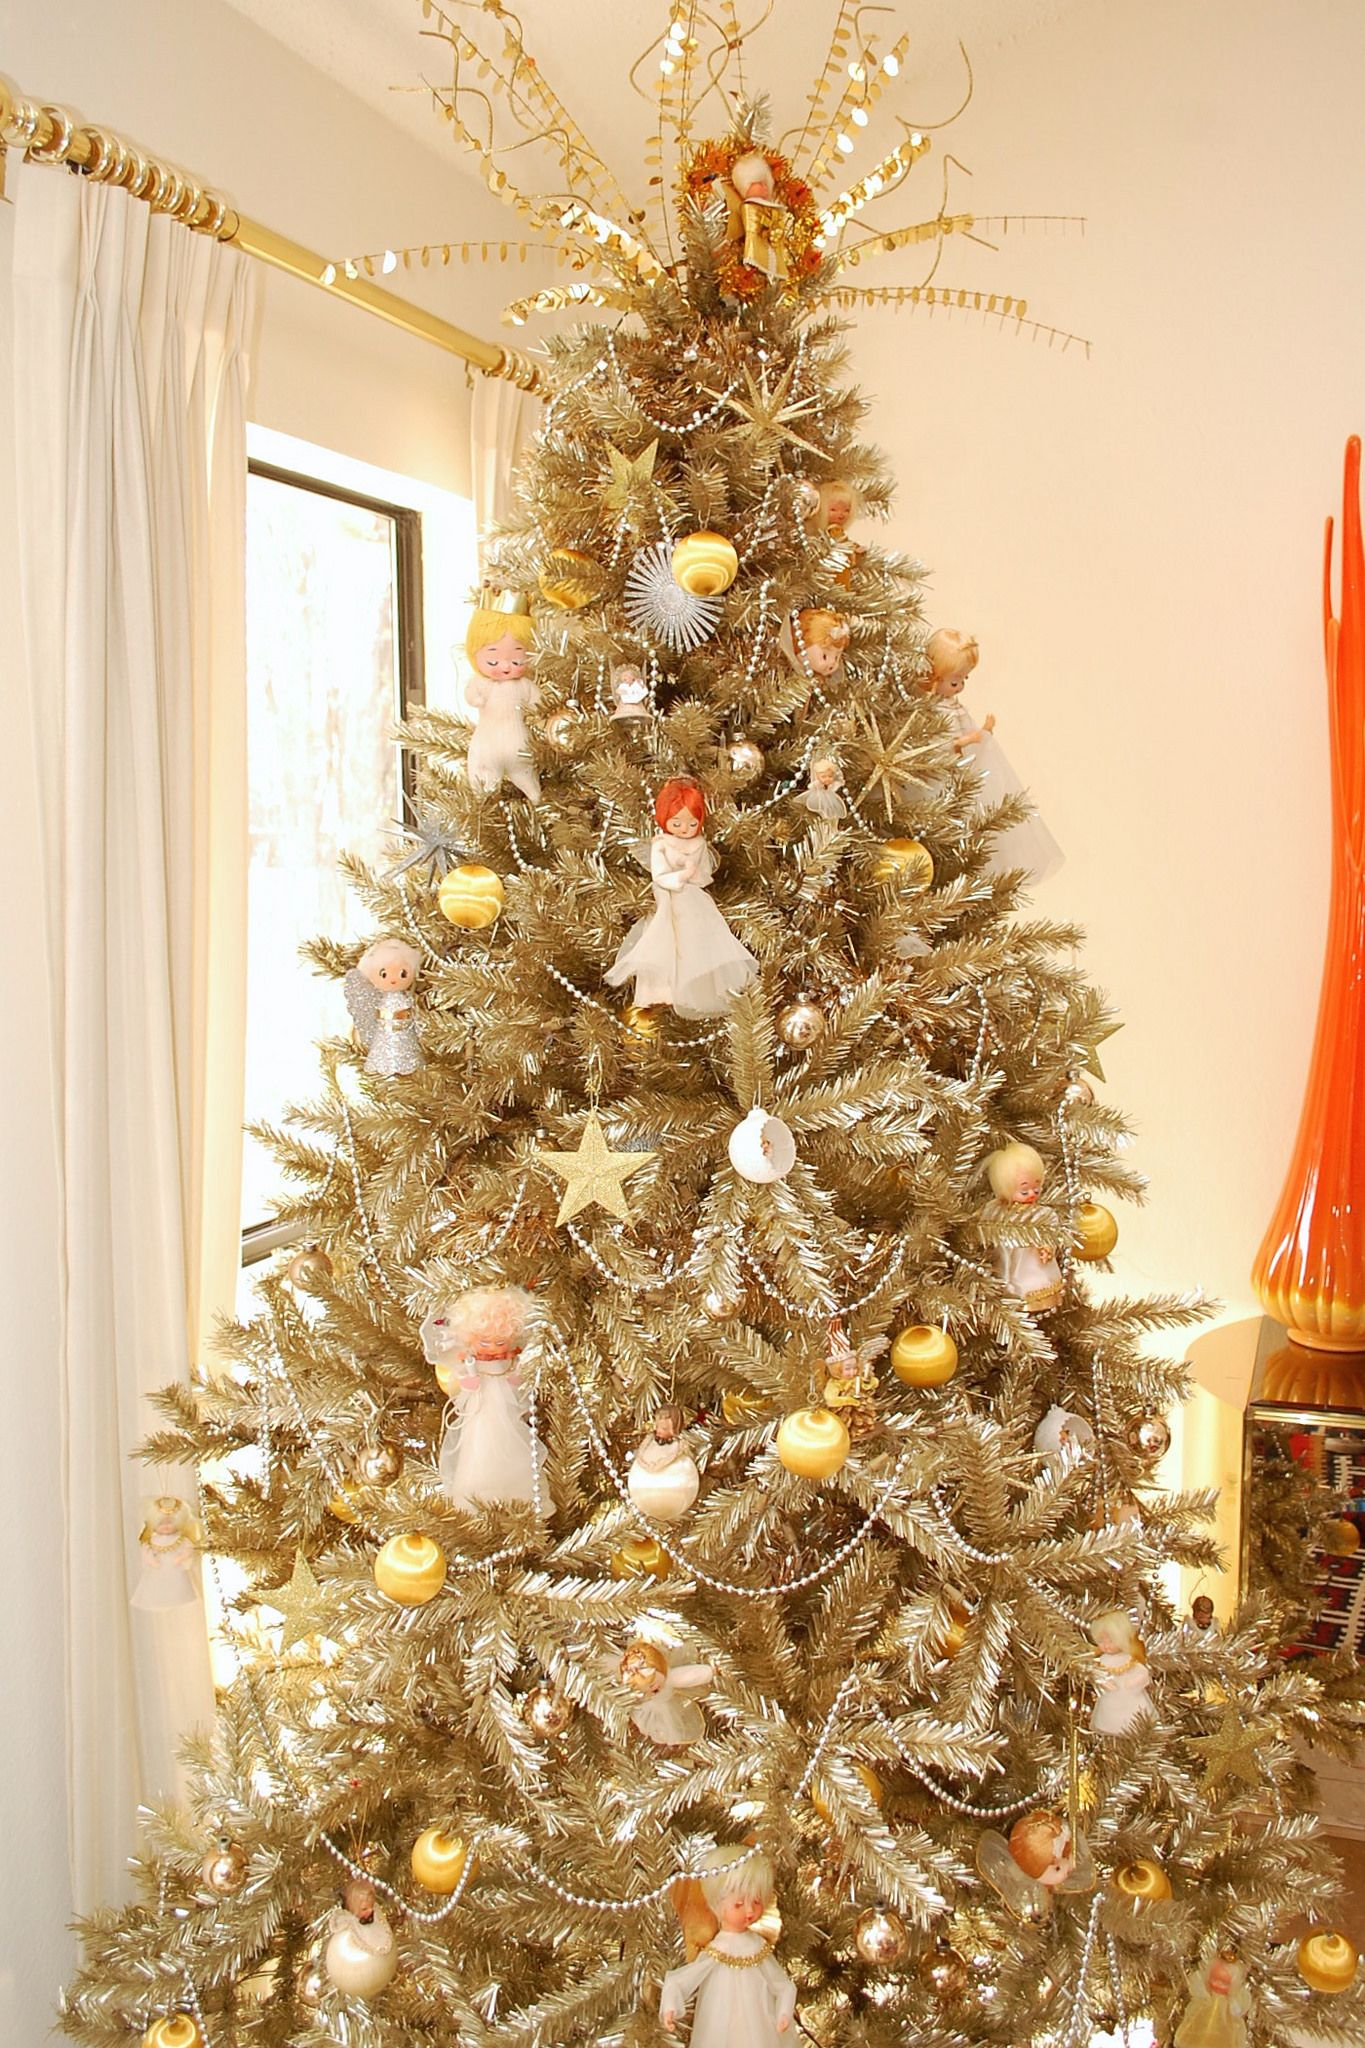 Who Says a Christmas Tree Has To Be Green? Gold